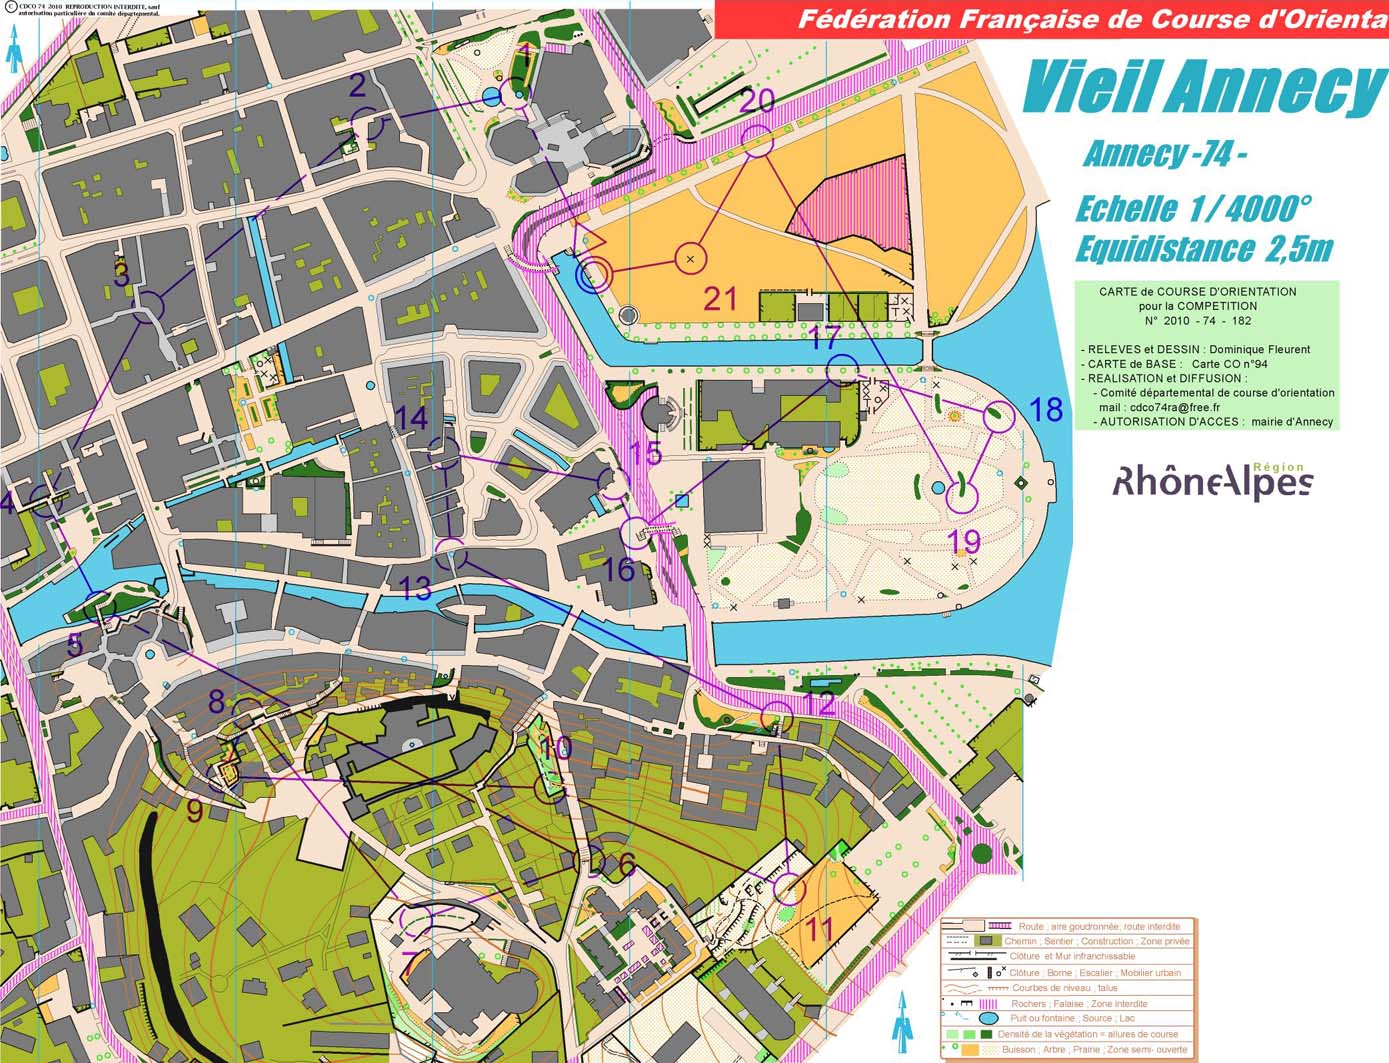 WOC 2011 training Sprint Qual (05.07.2011)